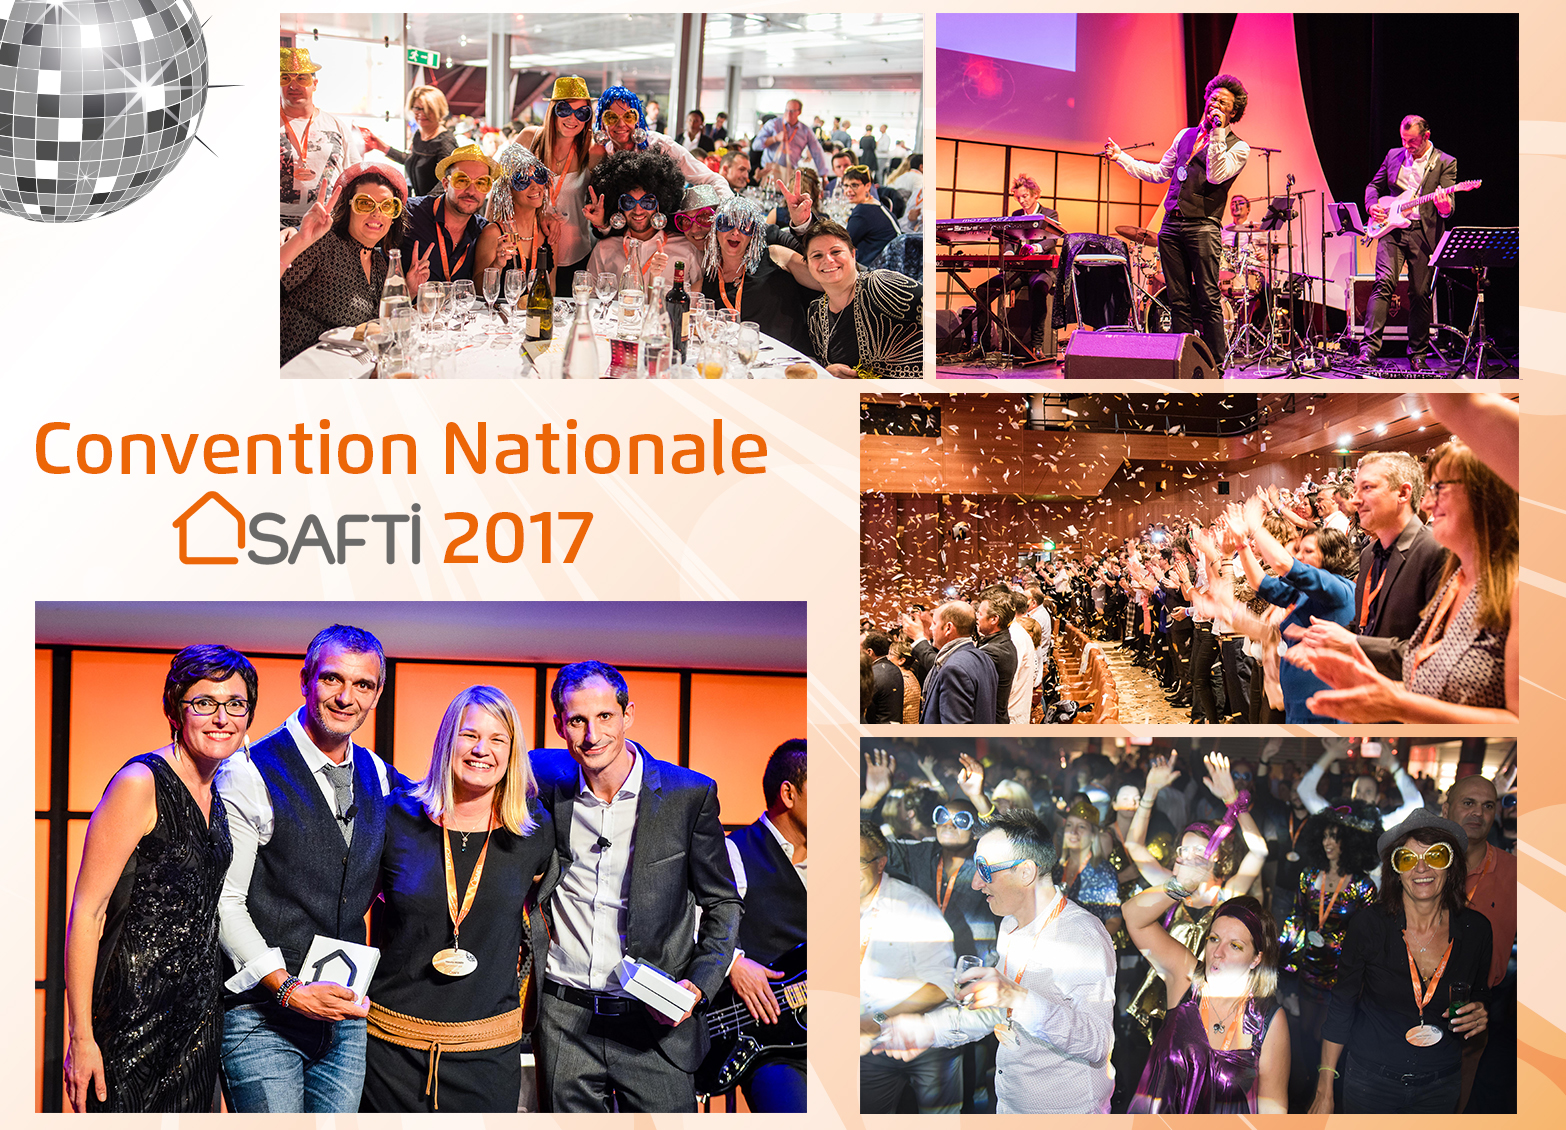 Convention nationale SAFTI 2017